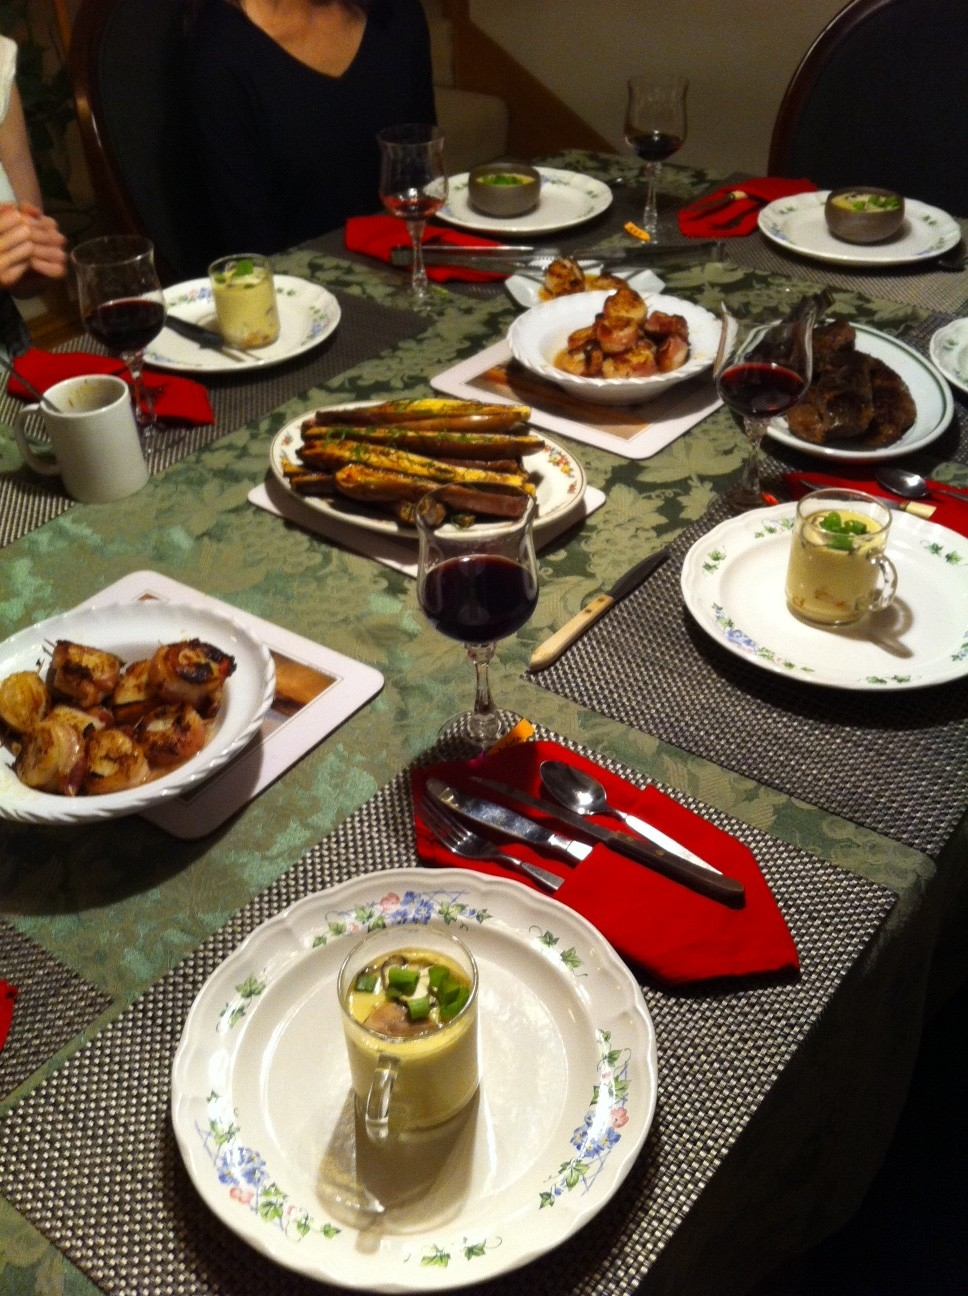 sous vide steak, miso-glazed eggplant, bacon-wrapped scallops, chawanmushi, and more...!